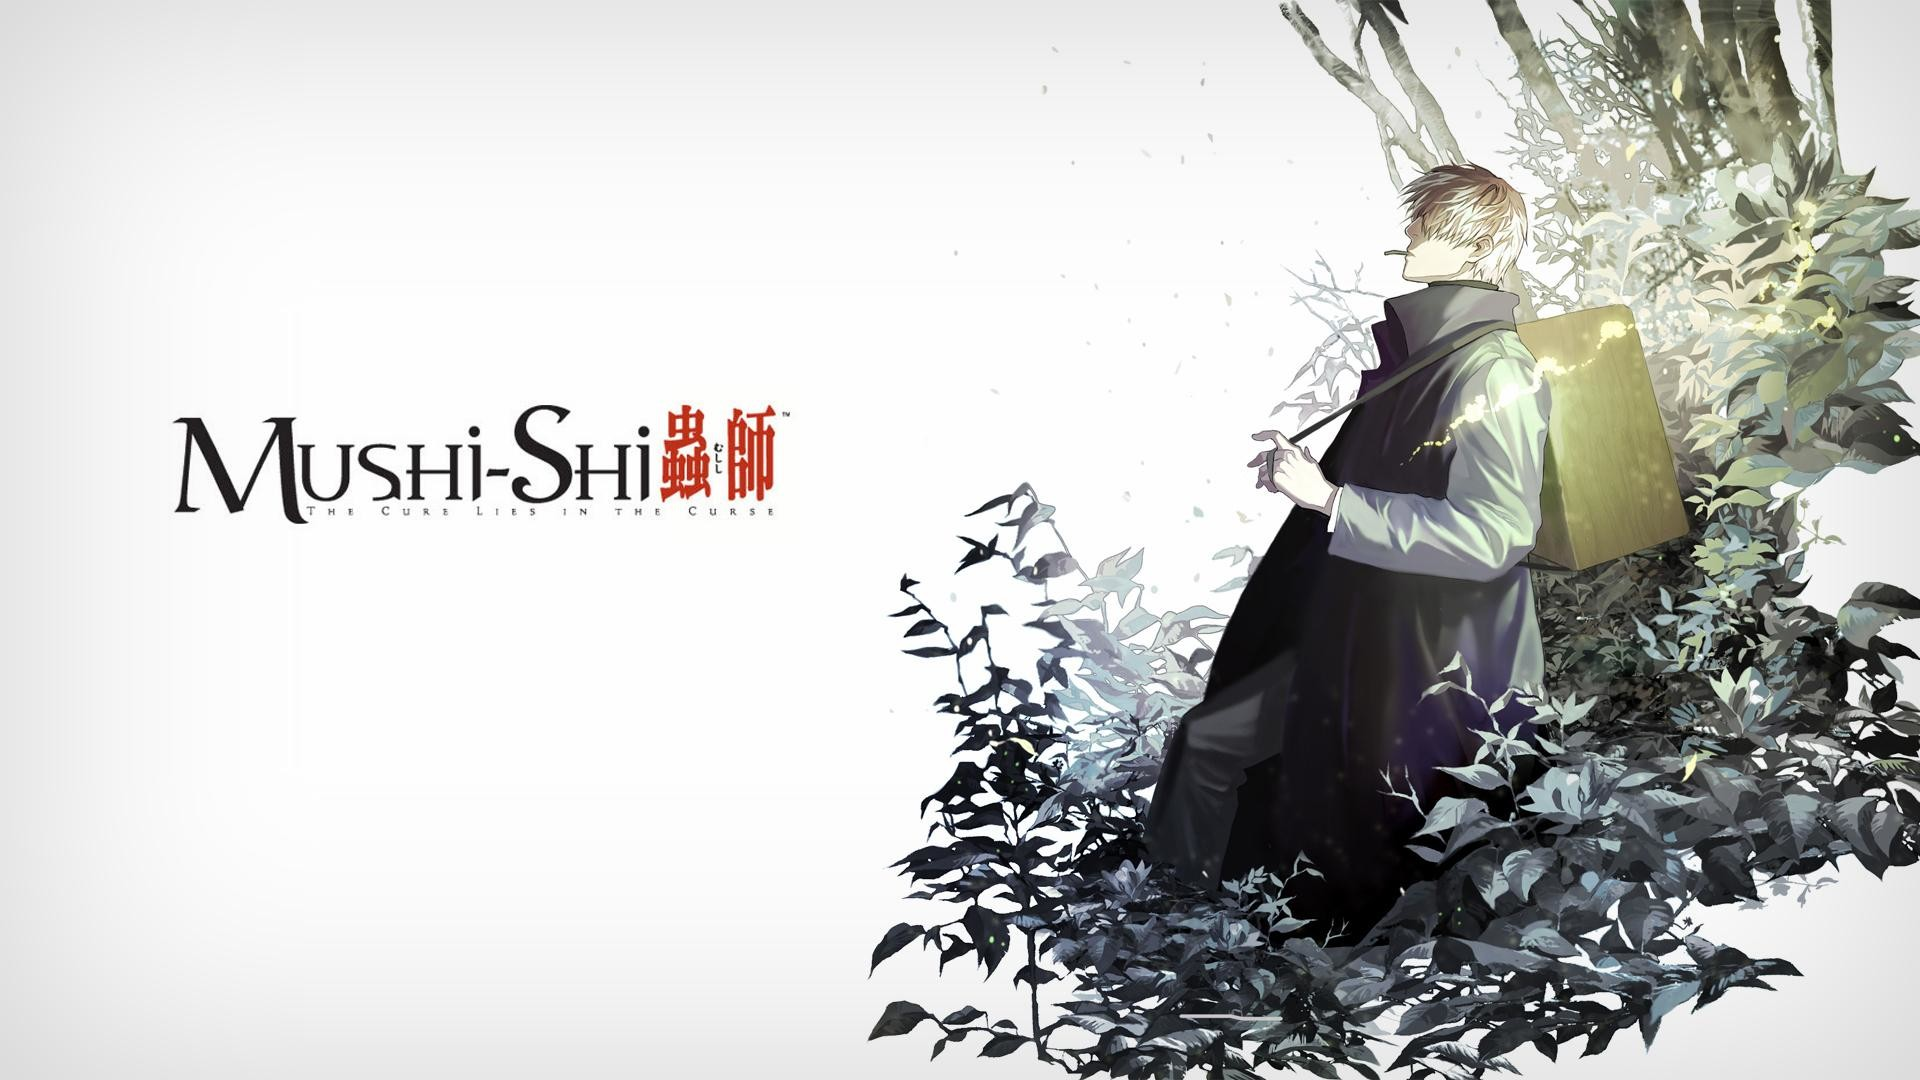 Res: 1920x1080, mushishi wallpaper #2275052